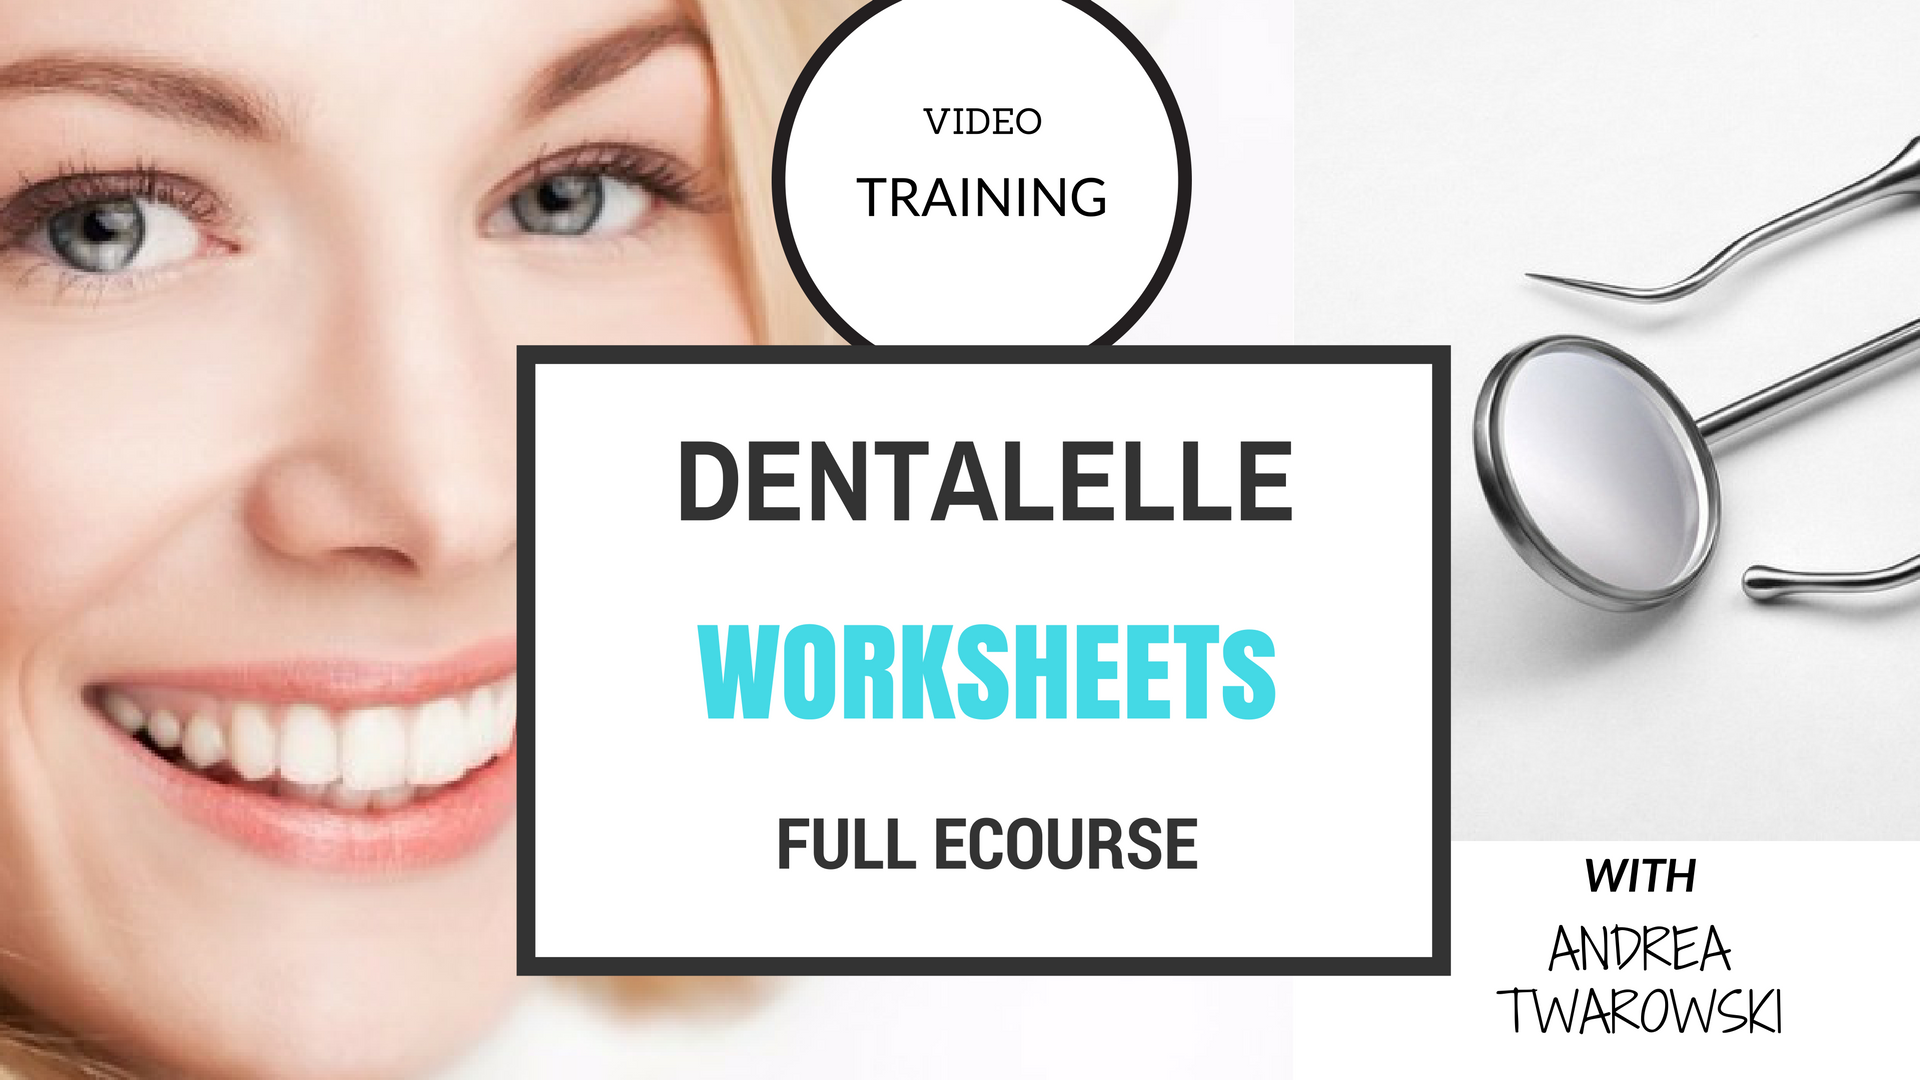 Dentalelle Worksheets Full eCourse